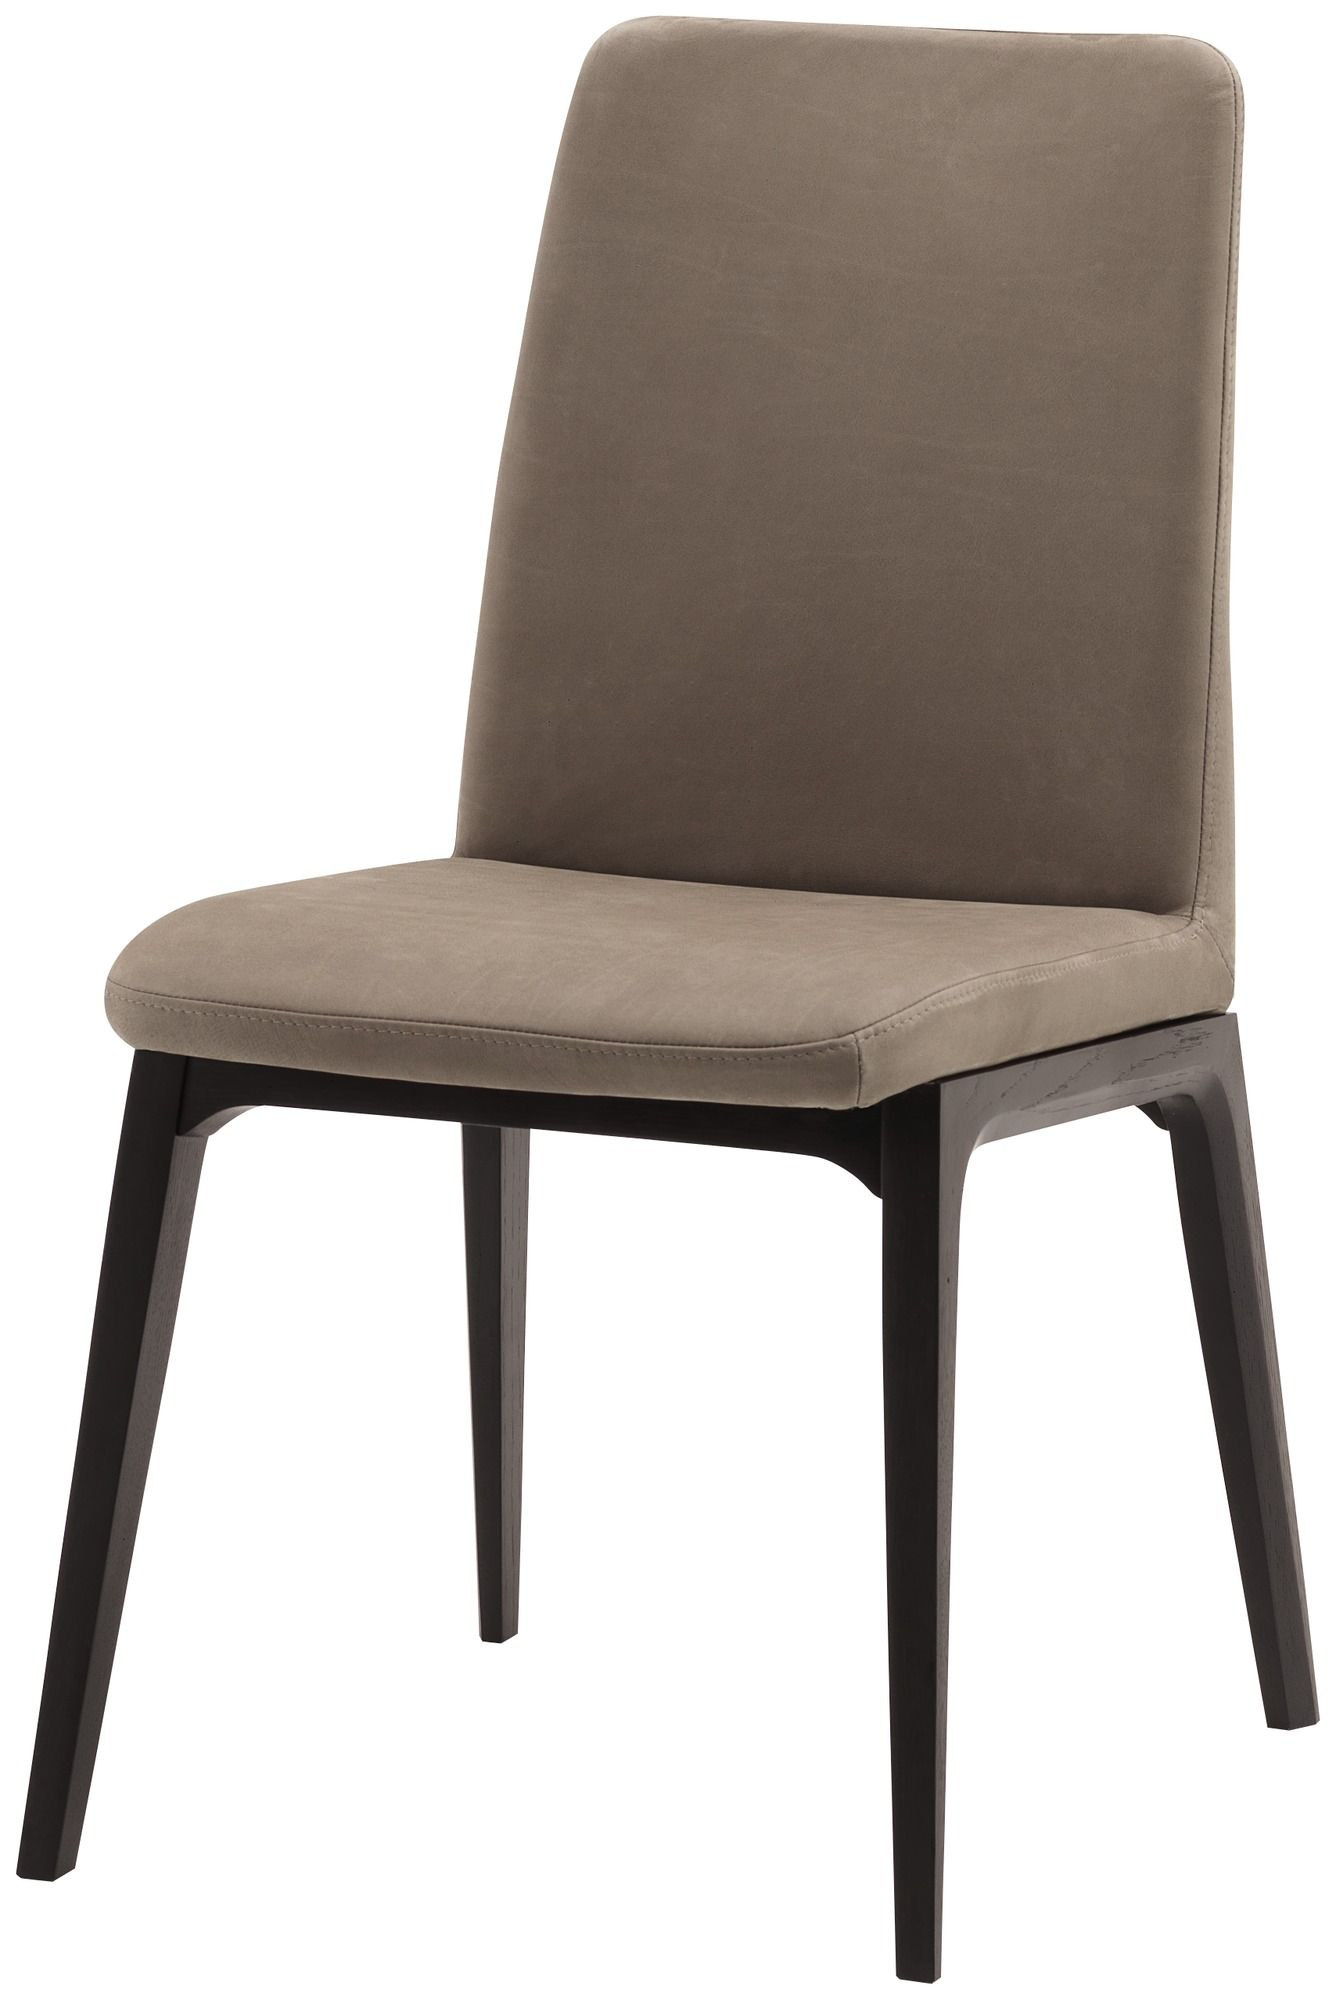 Modern dining chairs dining chair sydney designer dining chairs boconcept furniture sydney crows nest moore park in australia